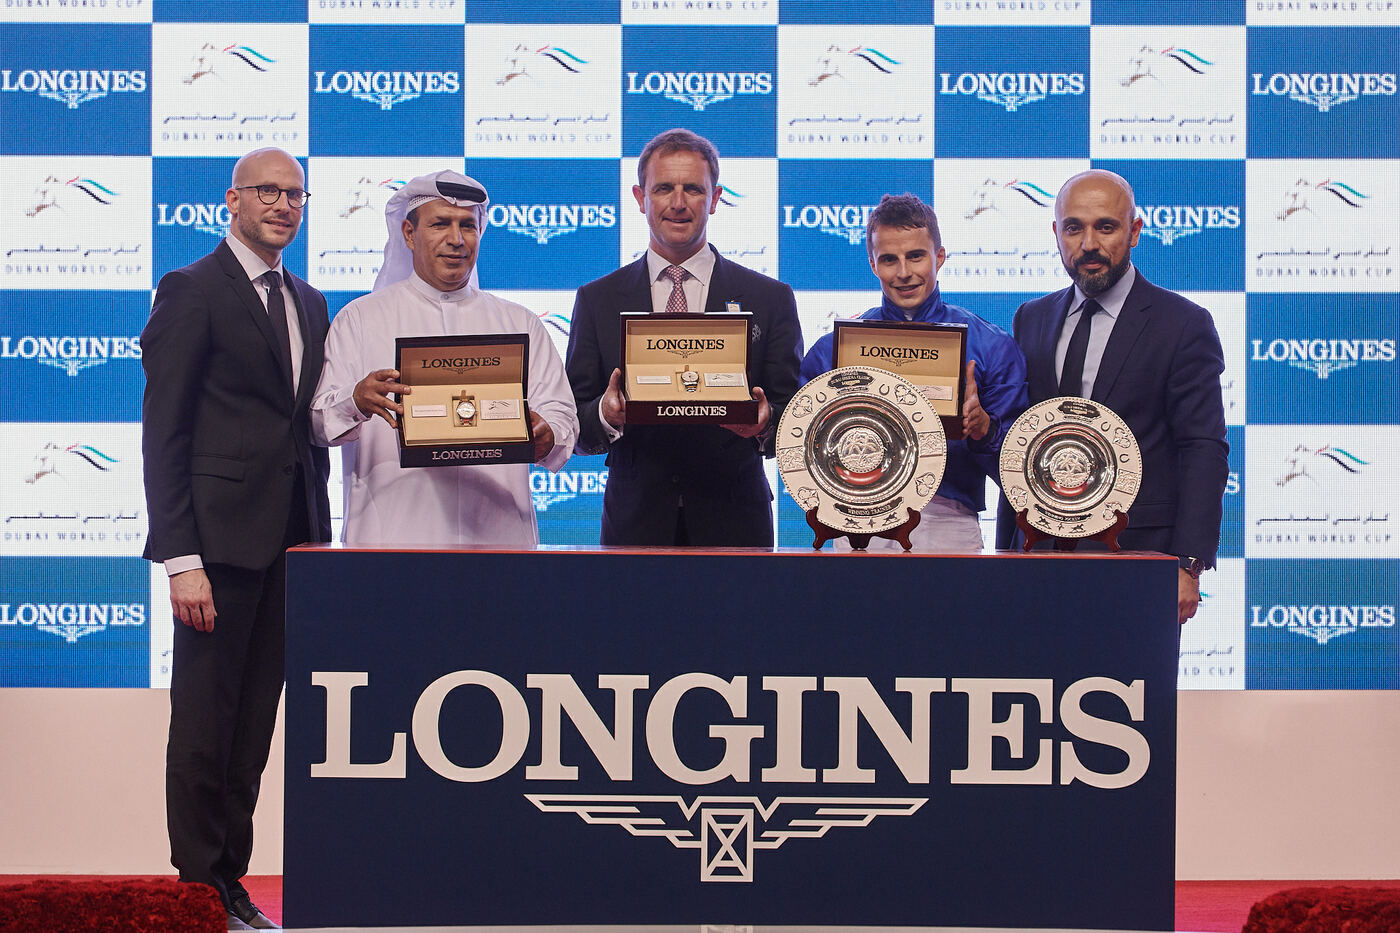 Longines Flat Racing Event: Swiss watch brand Longines honours the winners of  the Longines Dubai Sheema Classic 2